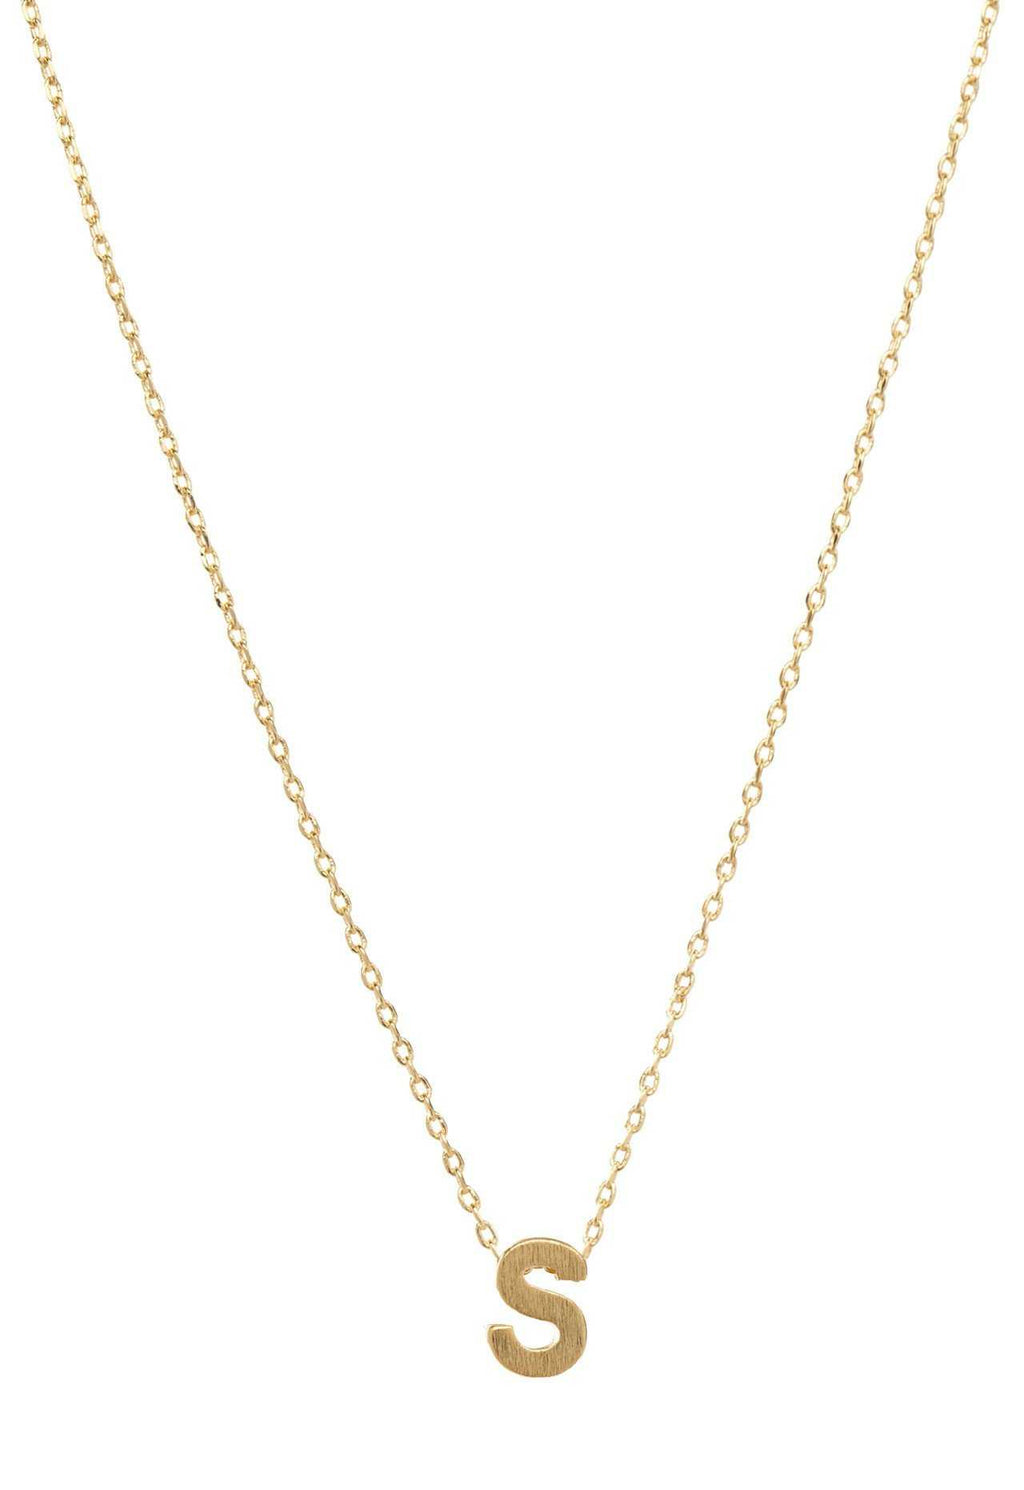 Jewelry - Be Yourself Initial Necklace - S